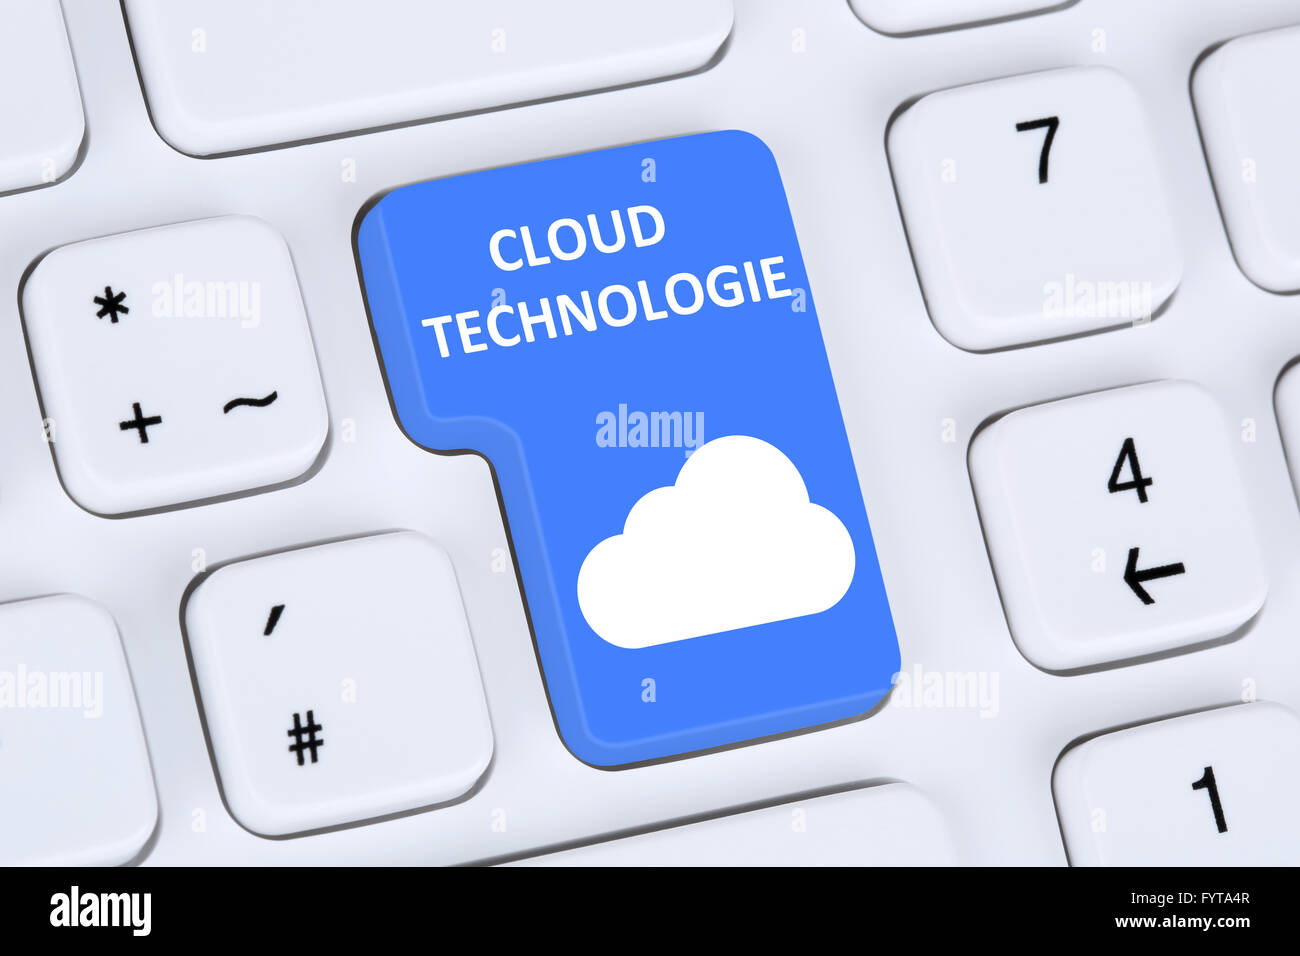 Symbol-Cloud-Computing-Technologie-Technologie Im Internet Stockbild